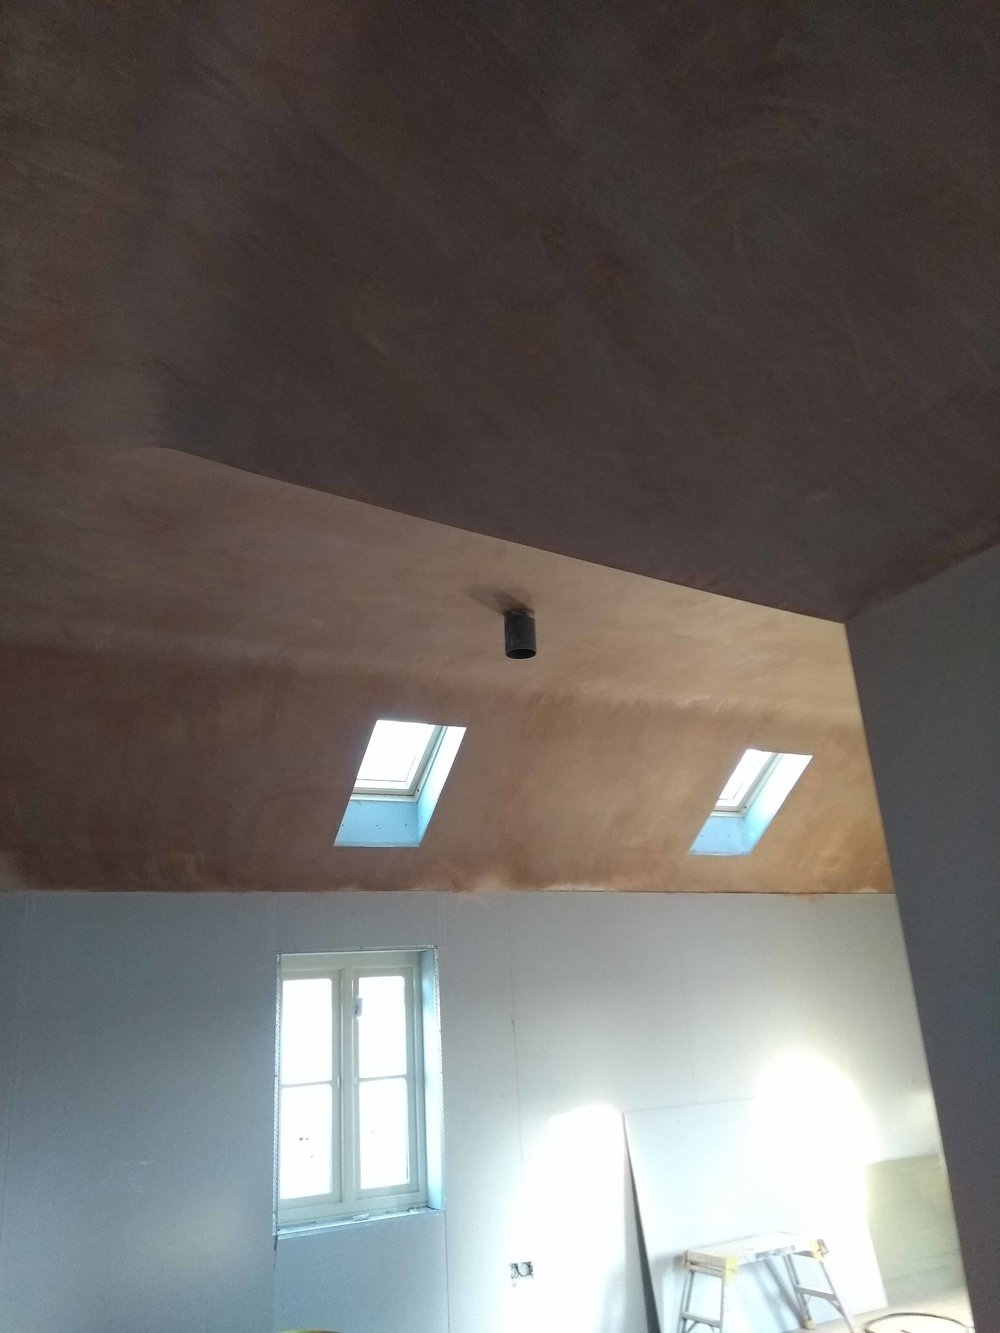 Vaulted ceiling plaster